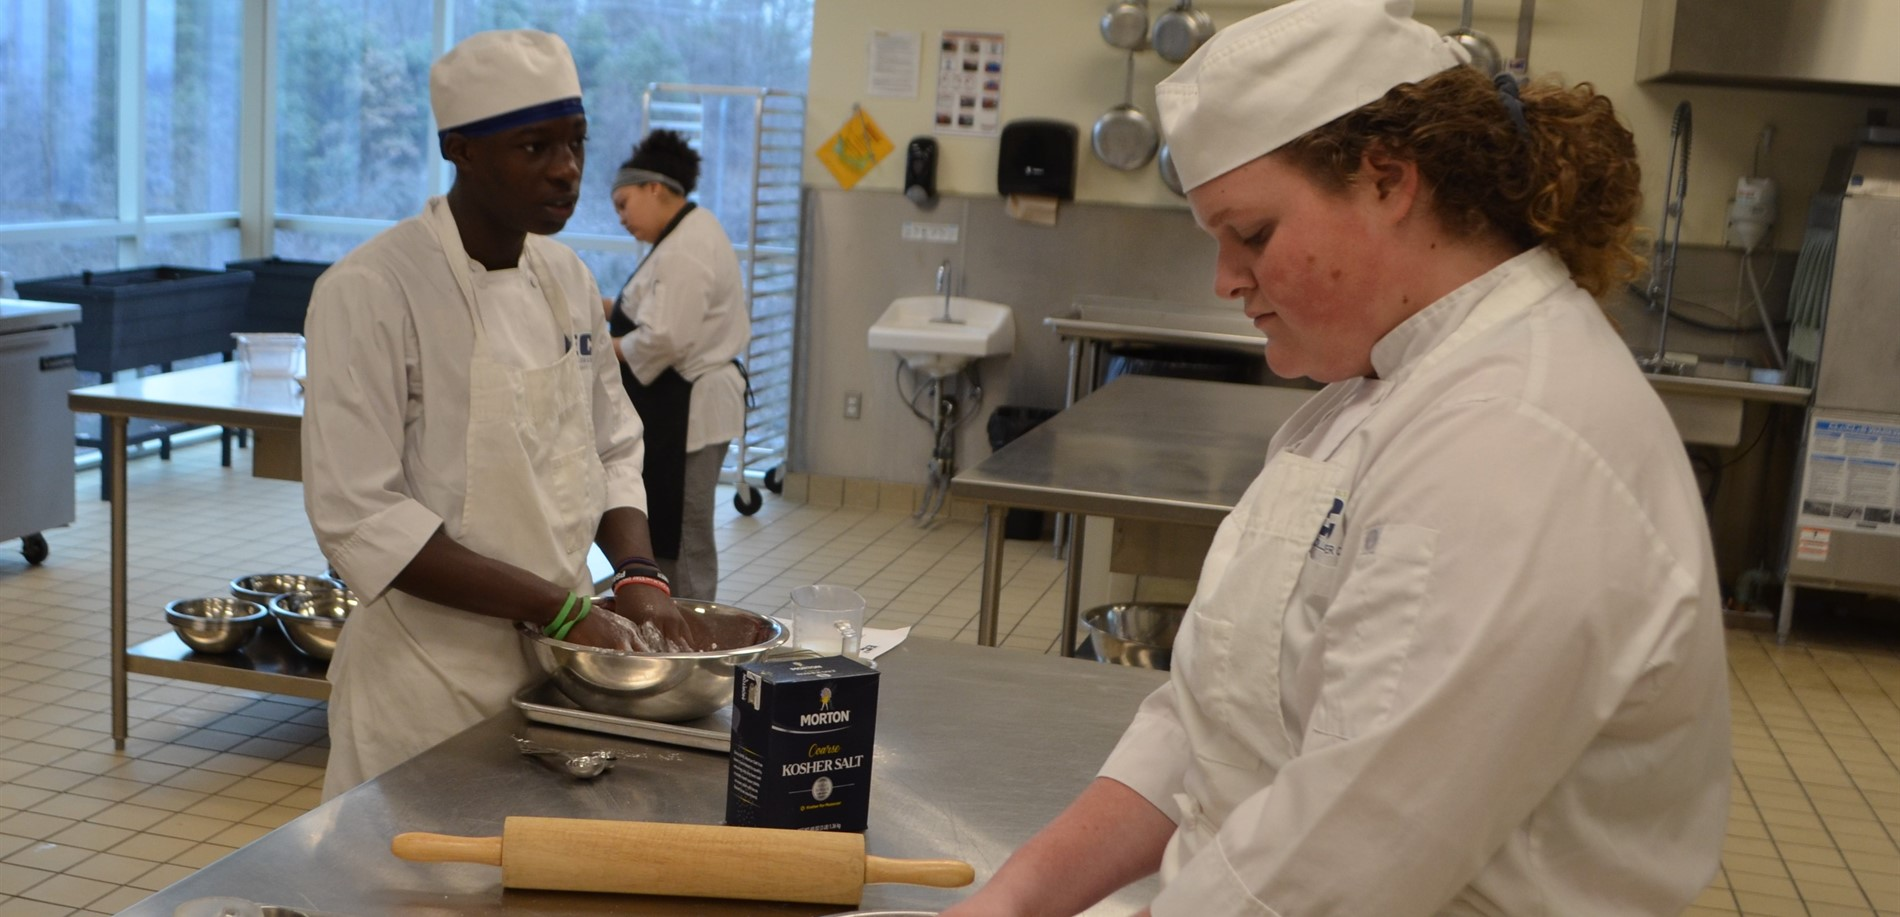 Culinary Arts students prepare a tasty dish at the HCS Early College & Career Center.